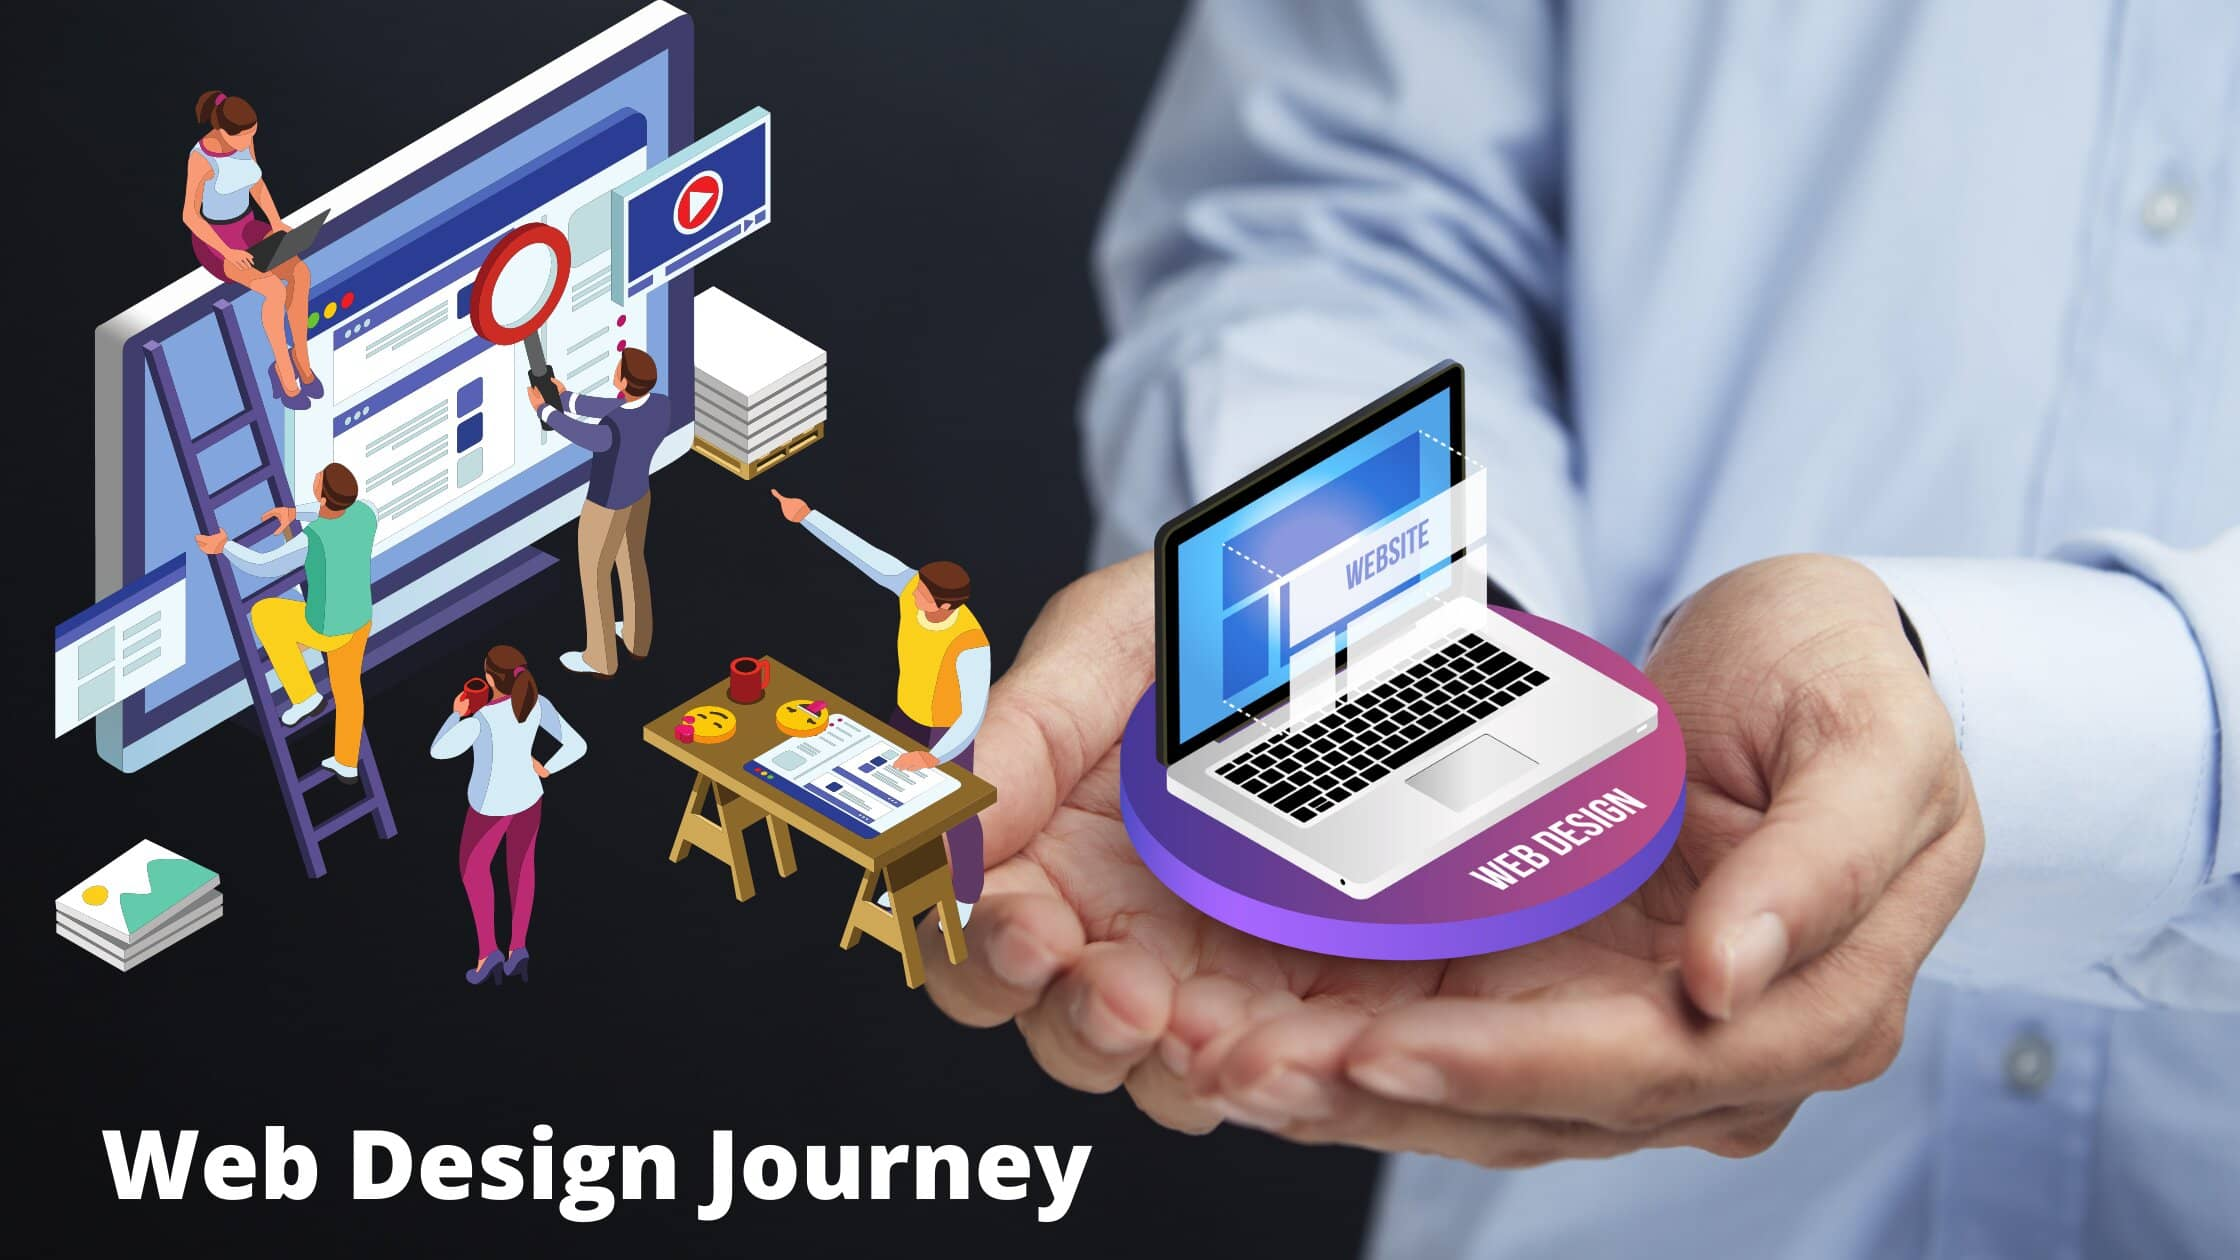 Web Design Journey